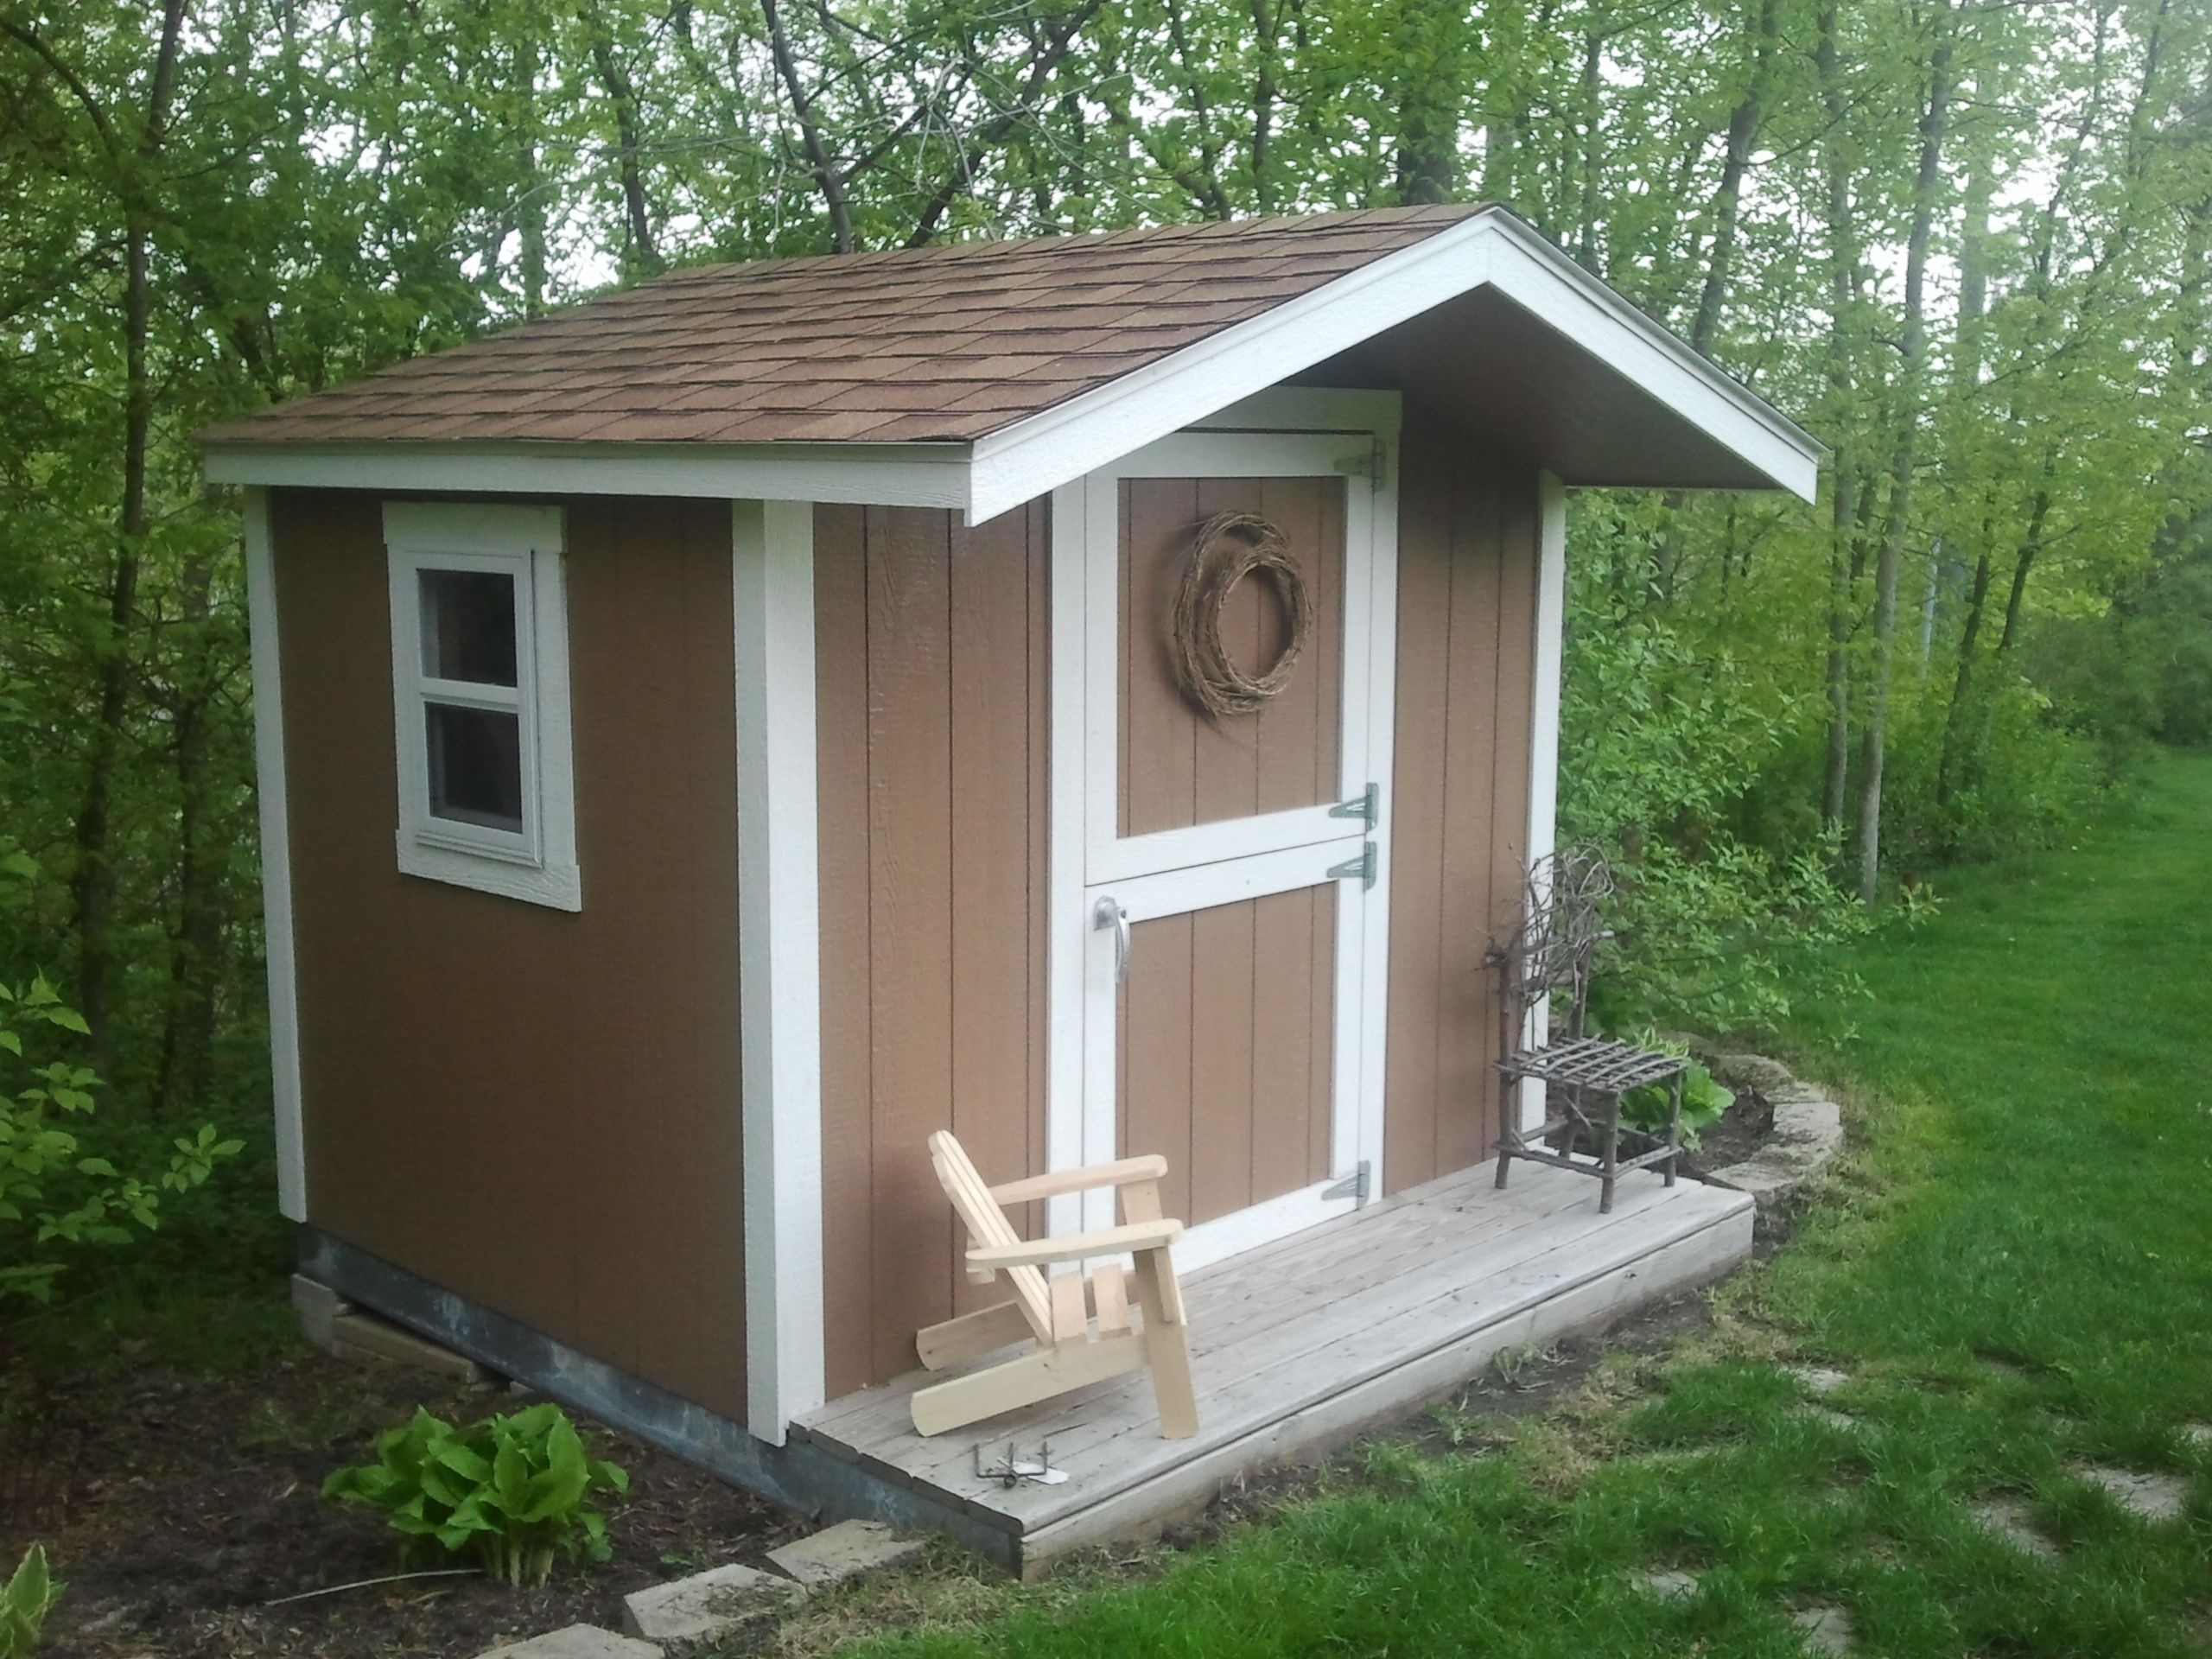 Tuff Shed Playhouse Ordered At Home Depot Tuff Shed Shed Homes